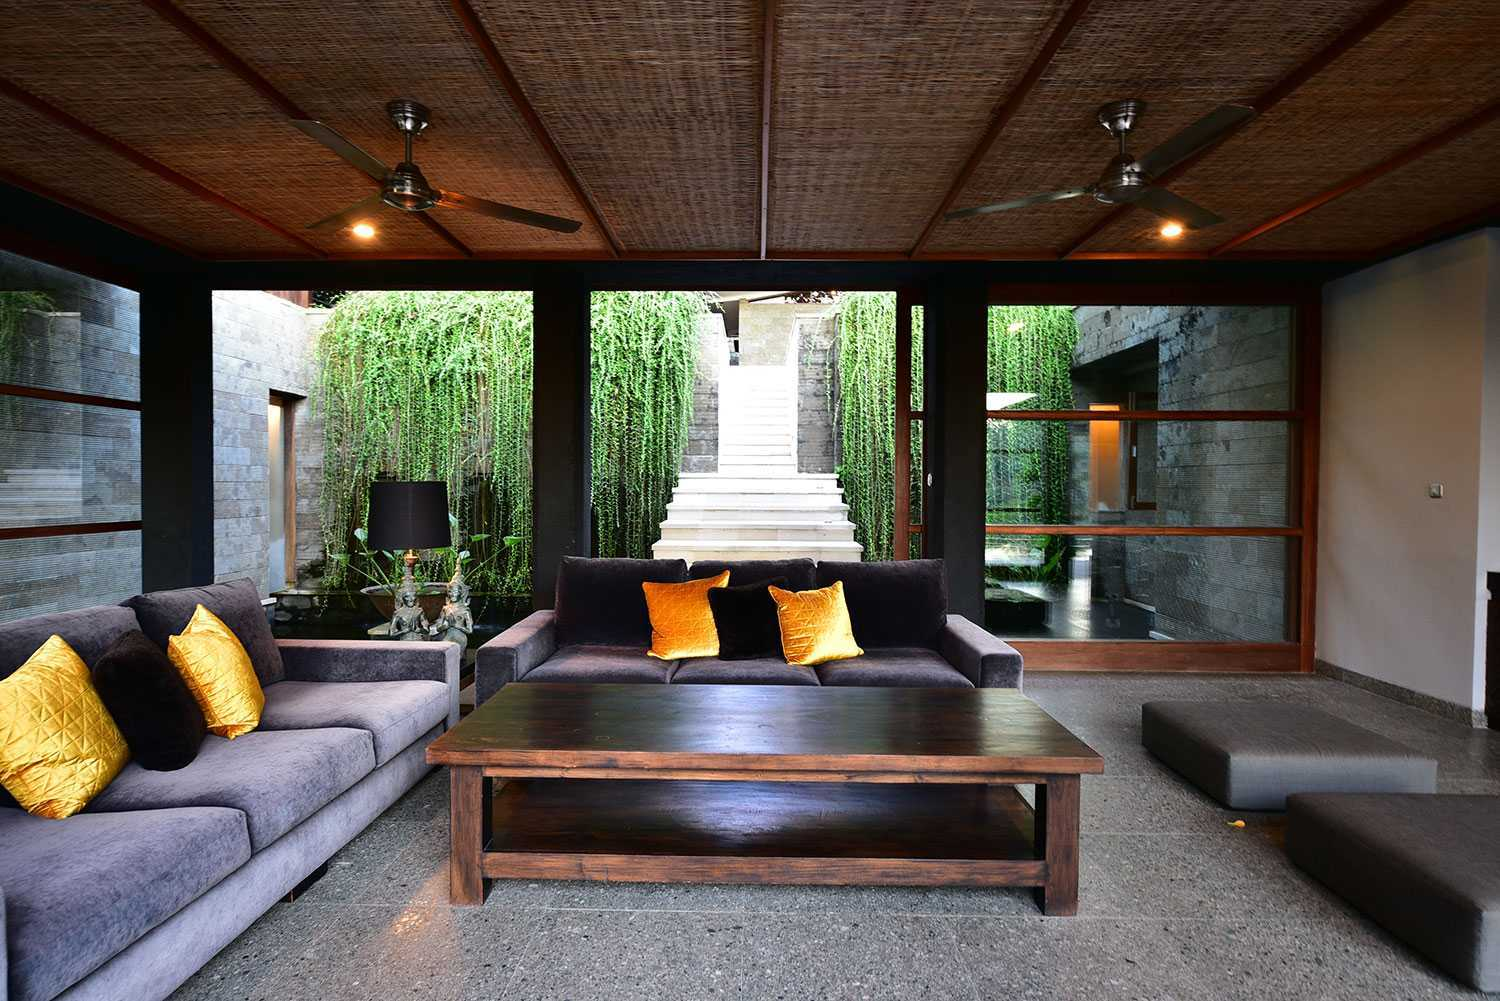 Agung Budi Raharsa | Architecture & Engineering Vanishing Villa - Bali Bali, Indonesia Kabupaten Tabanan, Bali, Indonesia Living Room Contemporary 49903